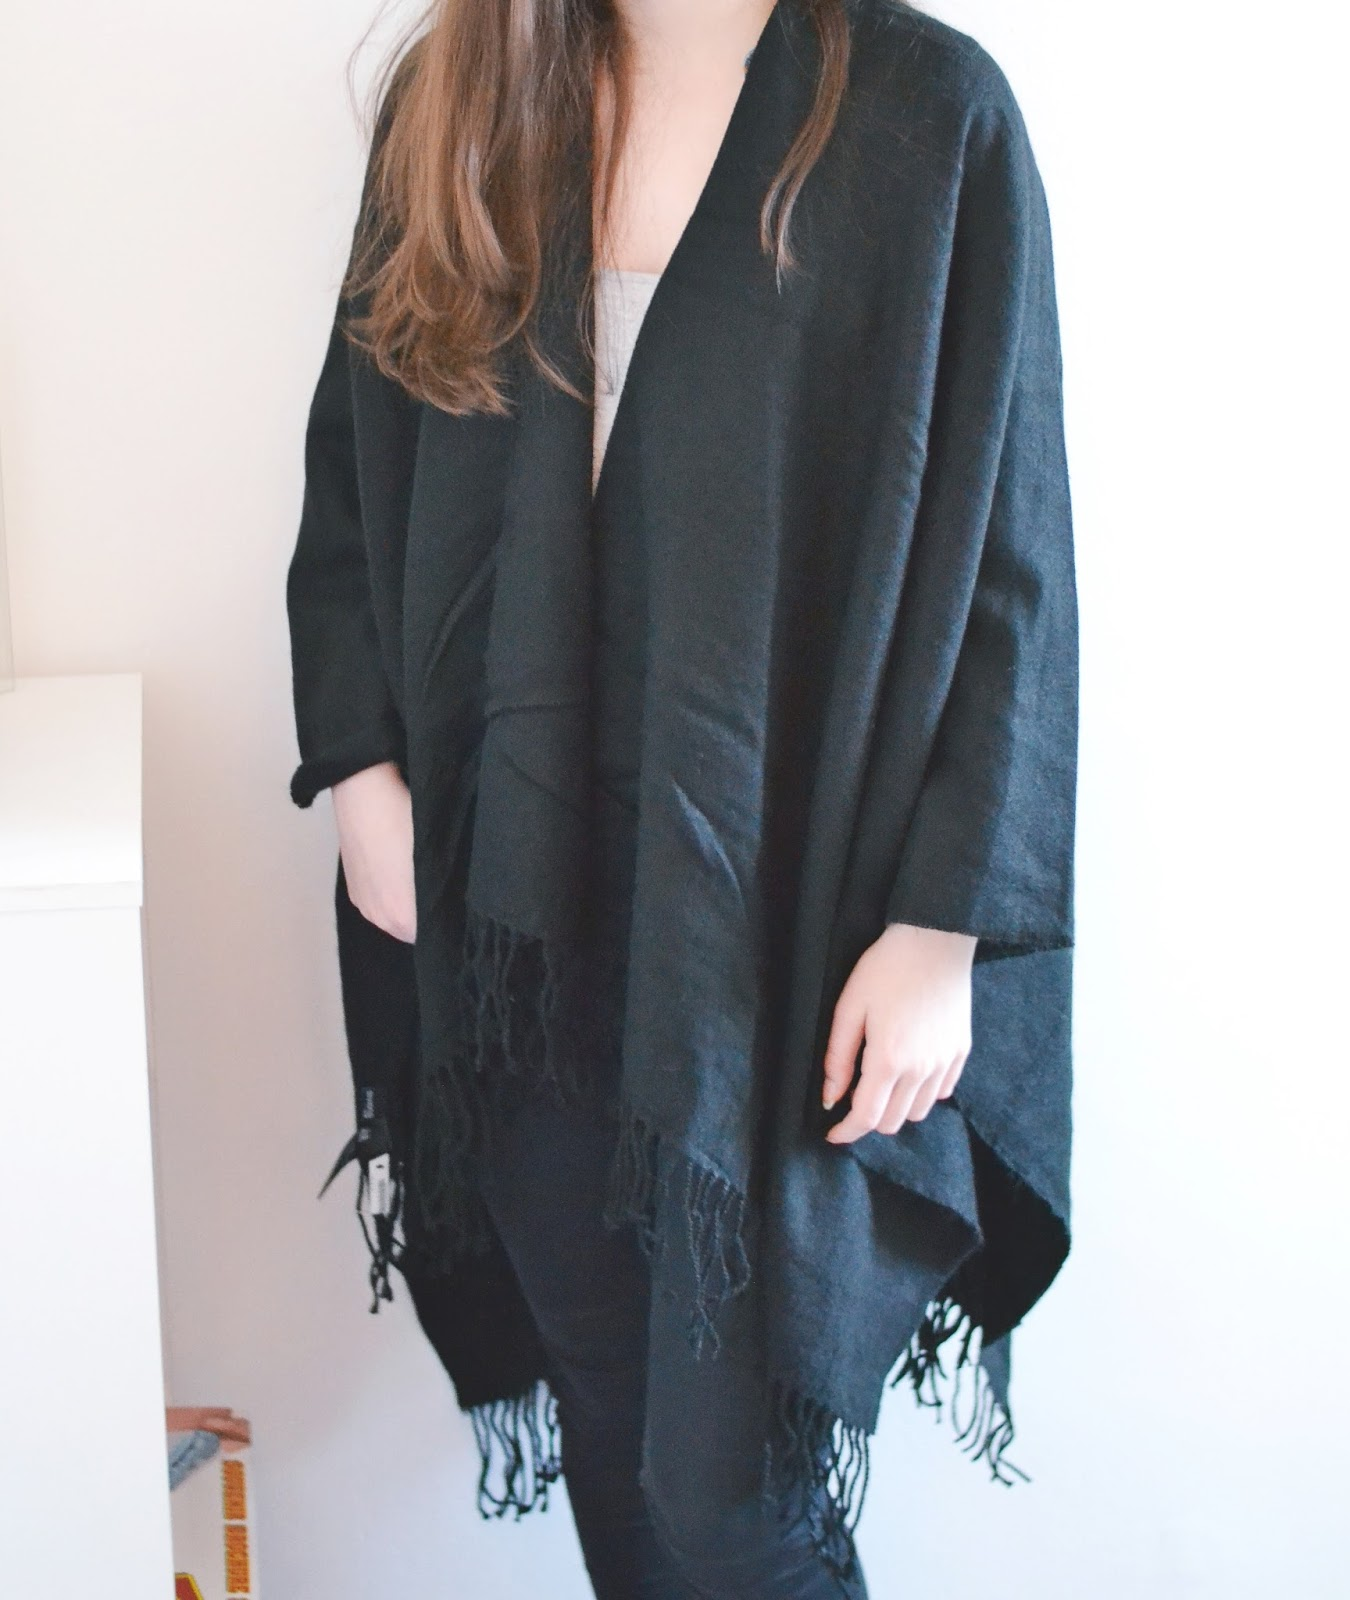 h&m black blanket cape